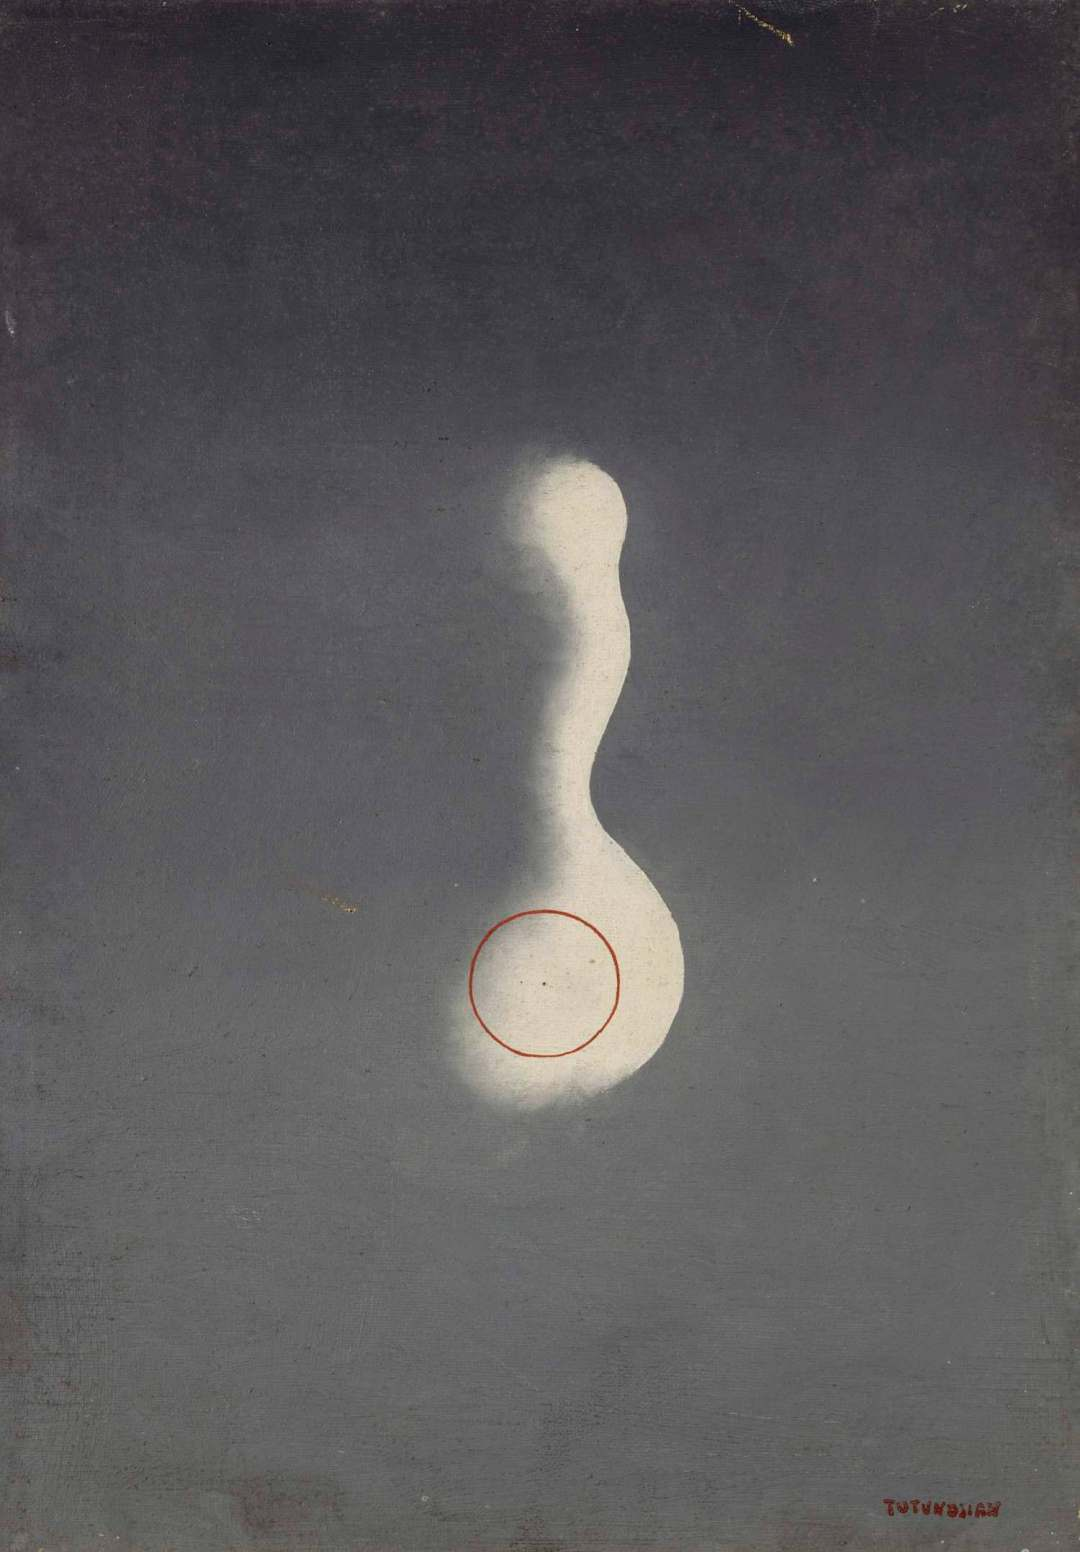 Untitled, oil on canvas, 55 x 38 cm, Musée National d'Art Moderne - Centre Georges Pompidou, Paris - Photo: Centre Pompidou, MNAM-CCI, Dist, RMN-Grand Palais / Jacques Faujour